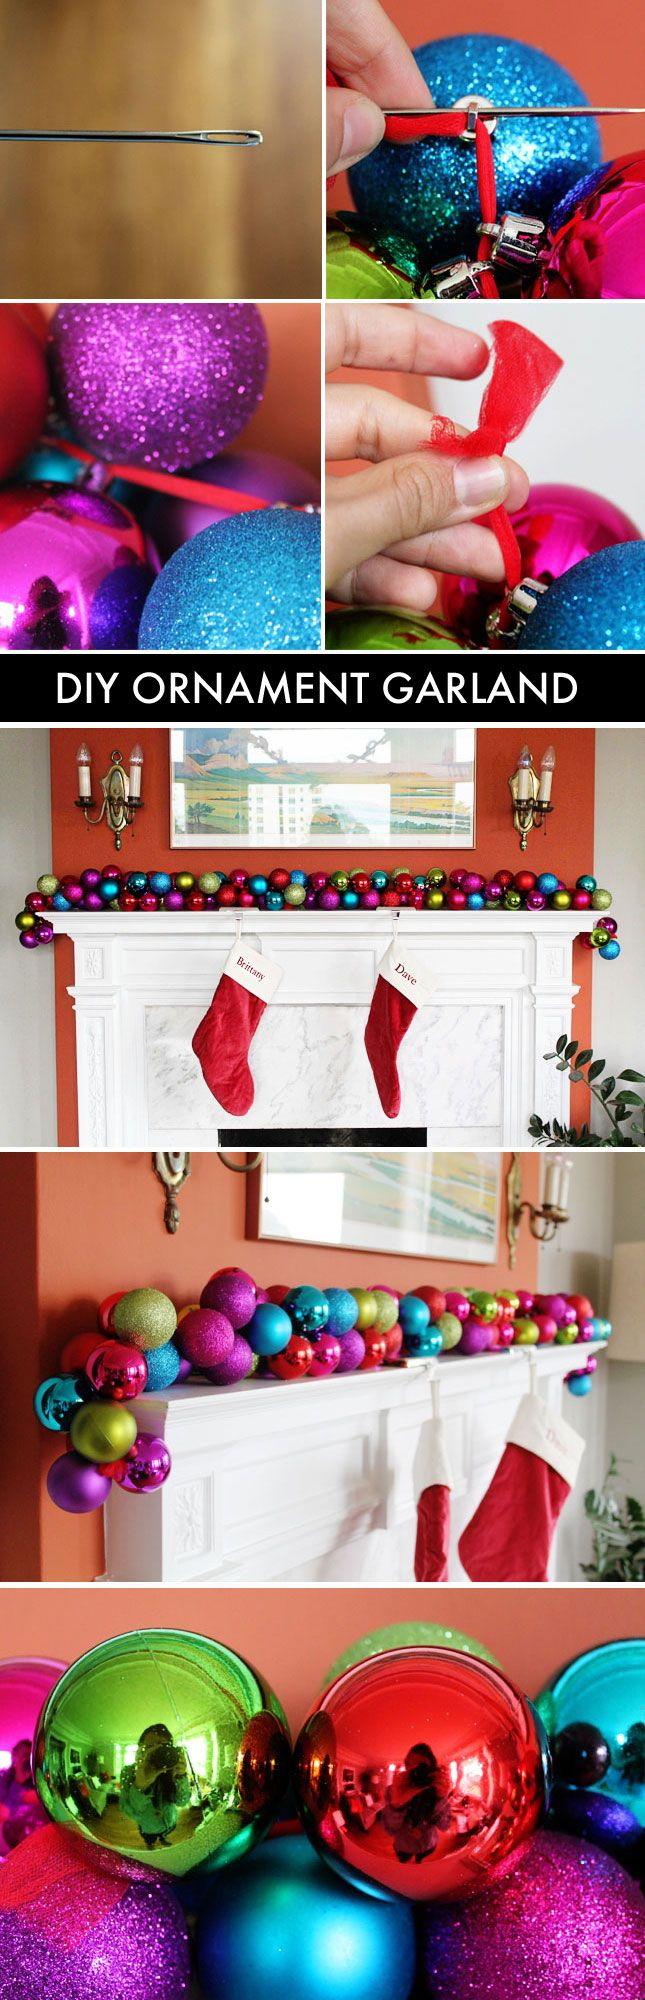 It takes less than 10 minutes to make this colorful ornament garland! - Would match the ornanment wreath I made perfectly! Note to self, buy plenty more clearance ornaments on 26 December...